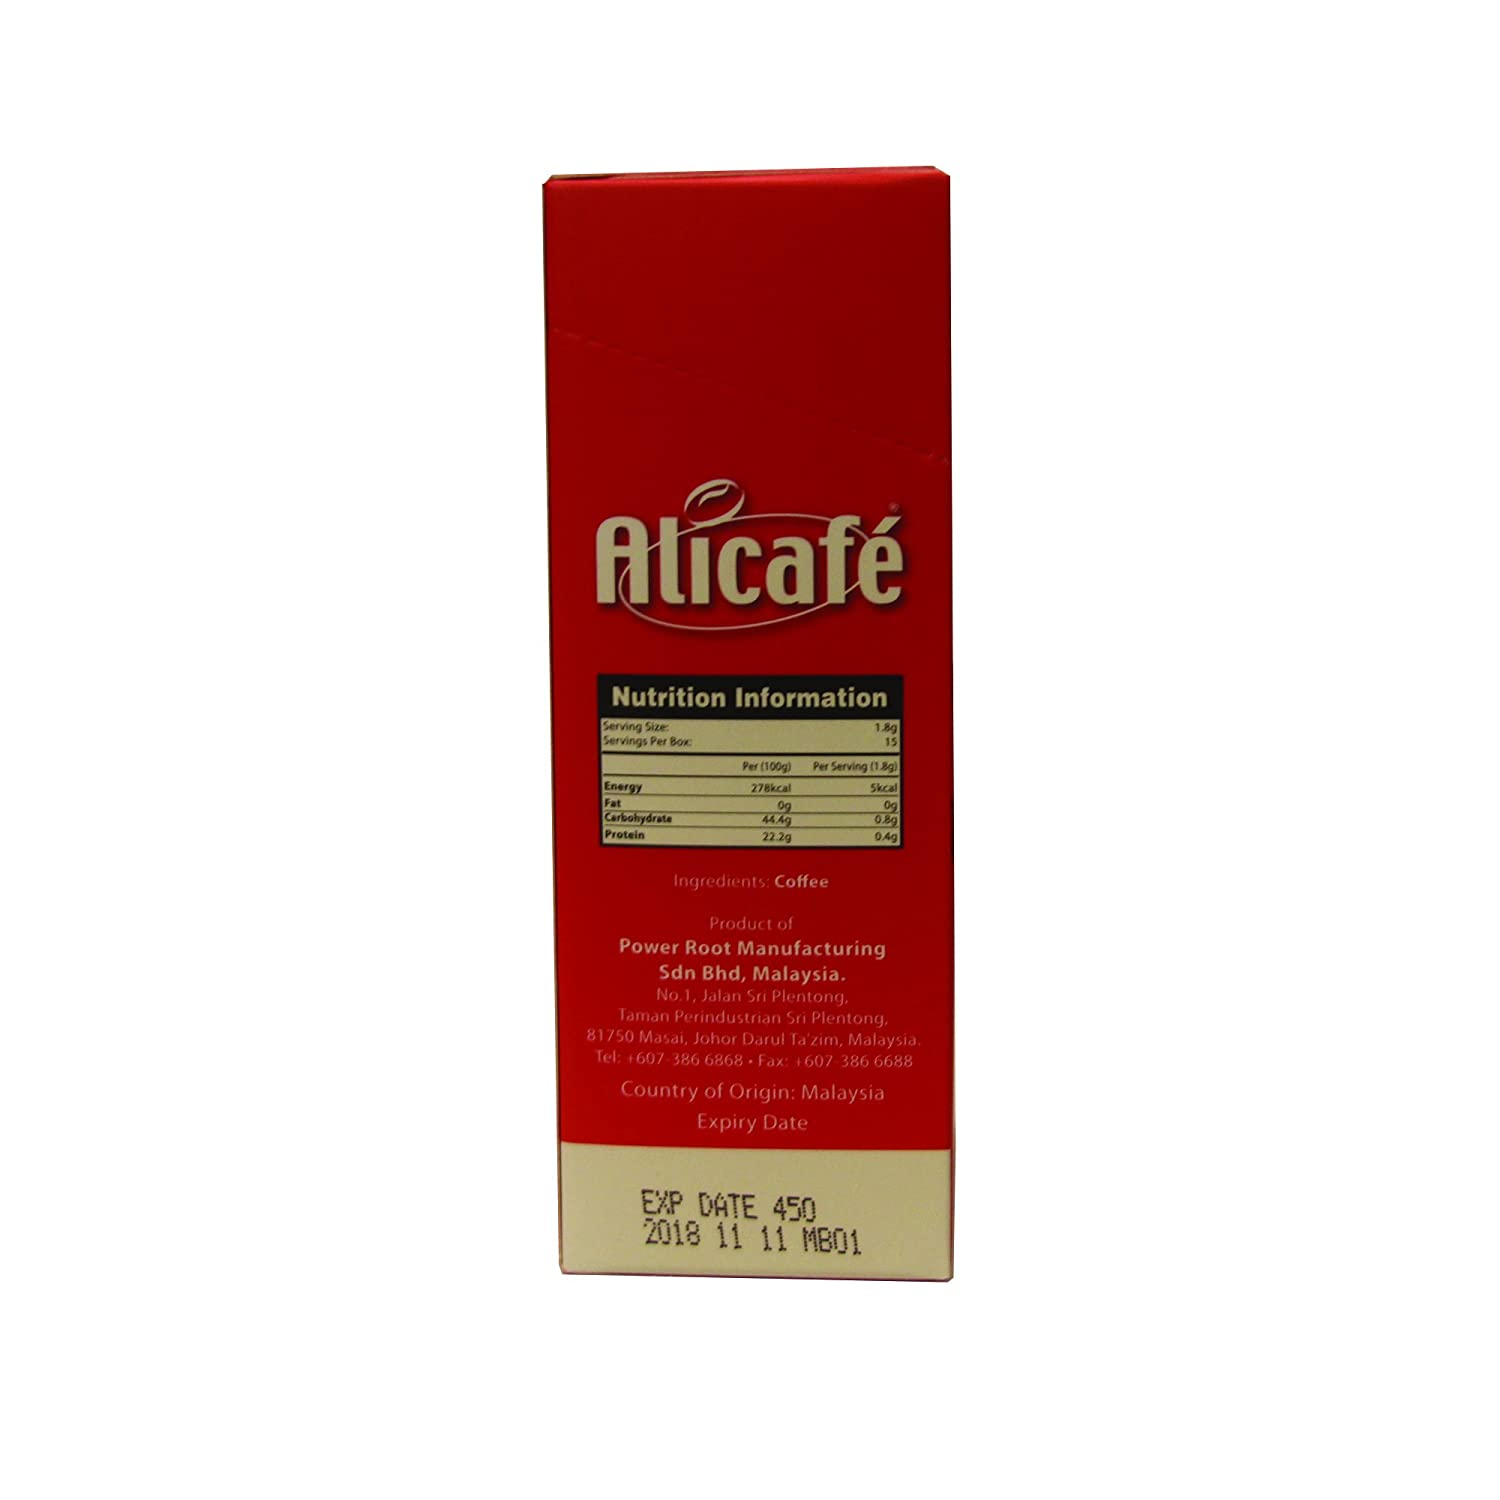 Amazon.com : Alicafe Classic Black Instant Coffee, 3.80oz(108g), 60 Sticks : Grocery & Gourmet Food